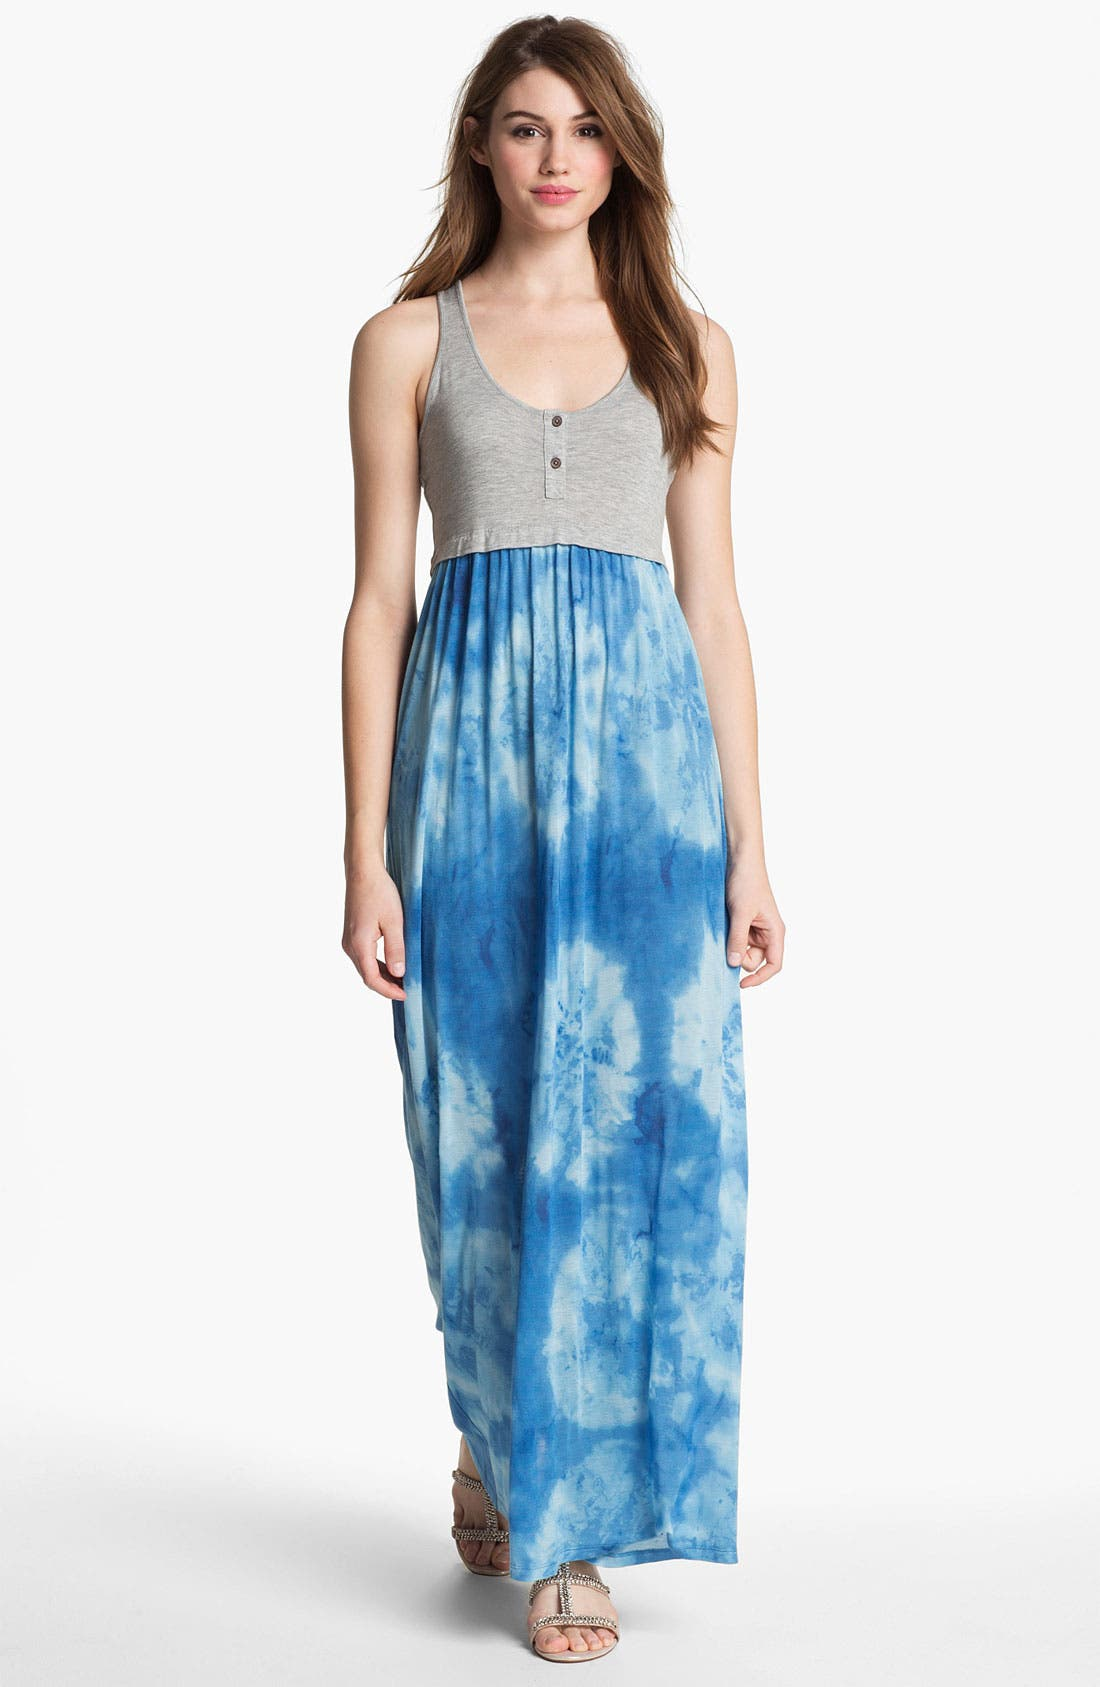 Main Image - Two by Vince Camuto Tie Dye Racerback Maxi Dress